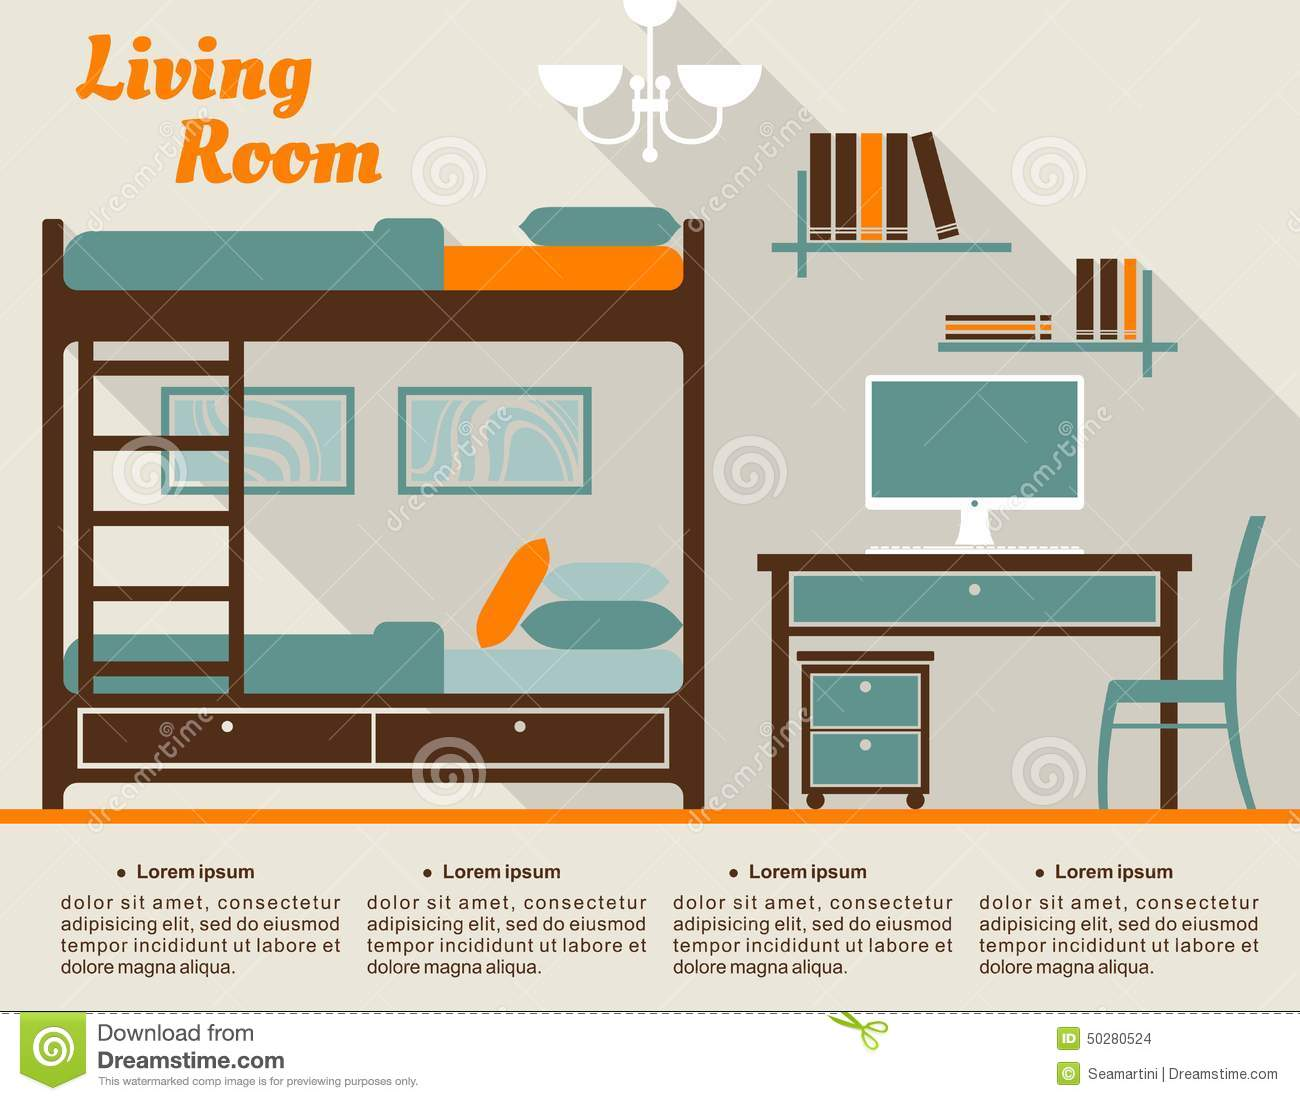 Living room flat interior design infographic stock vector for Interior design images vector